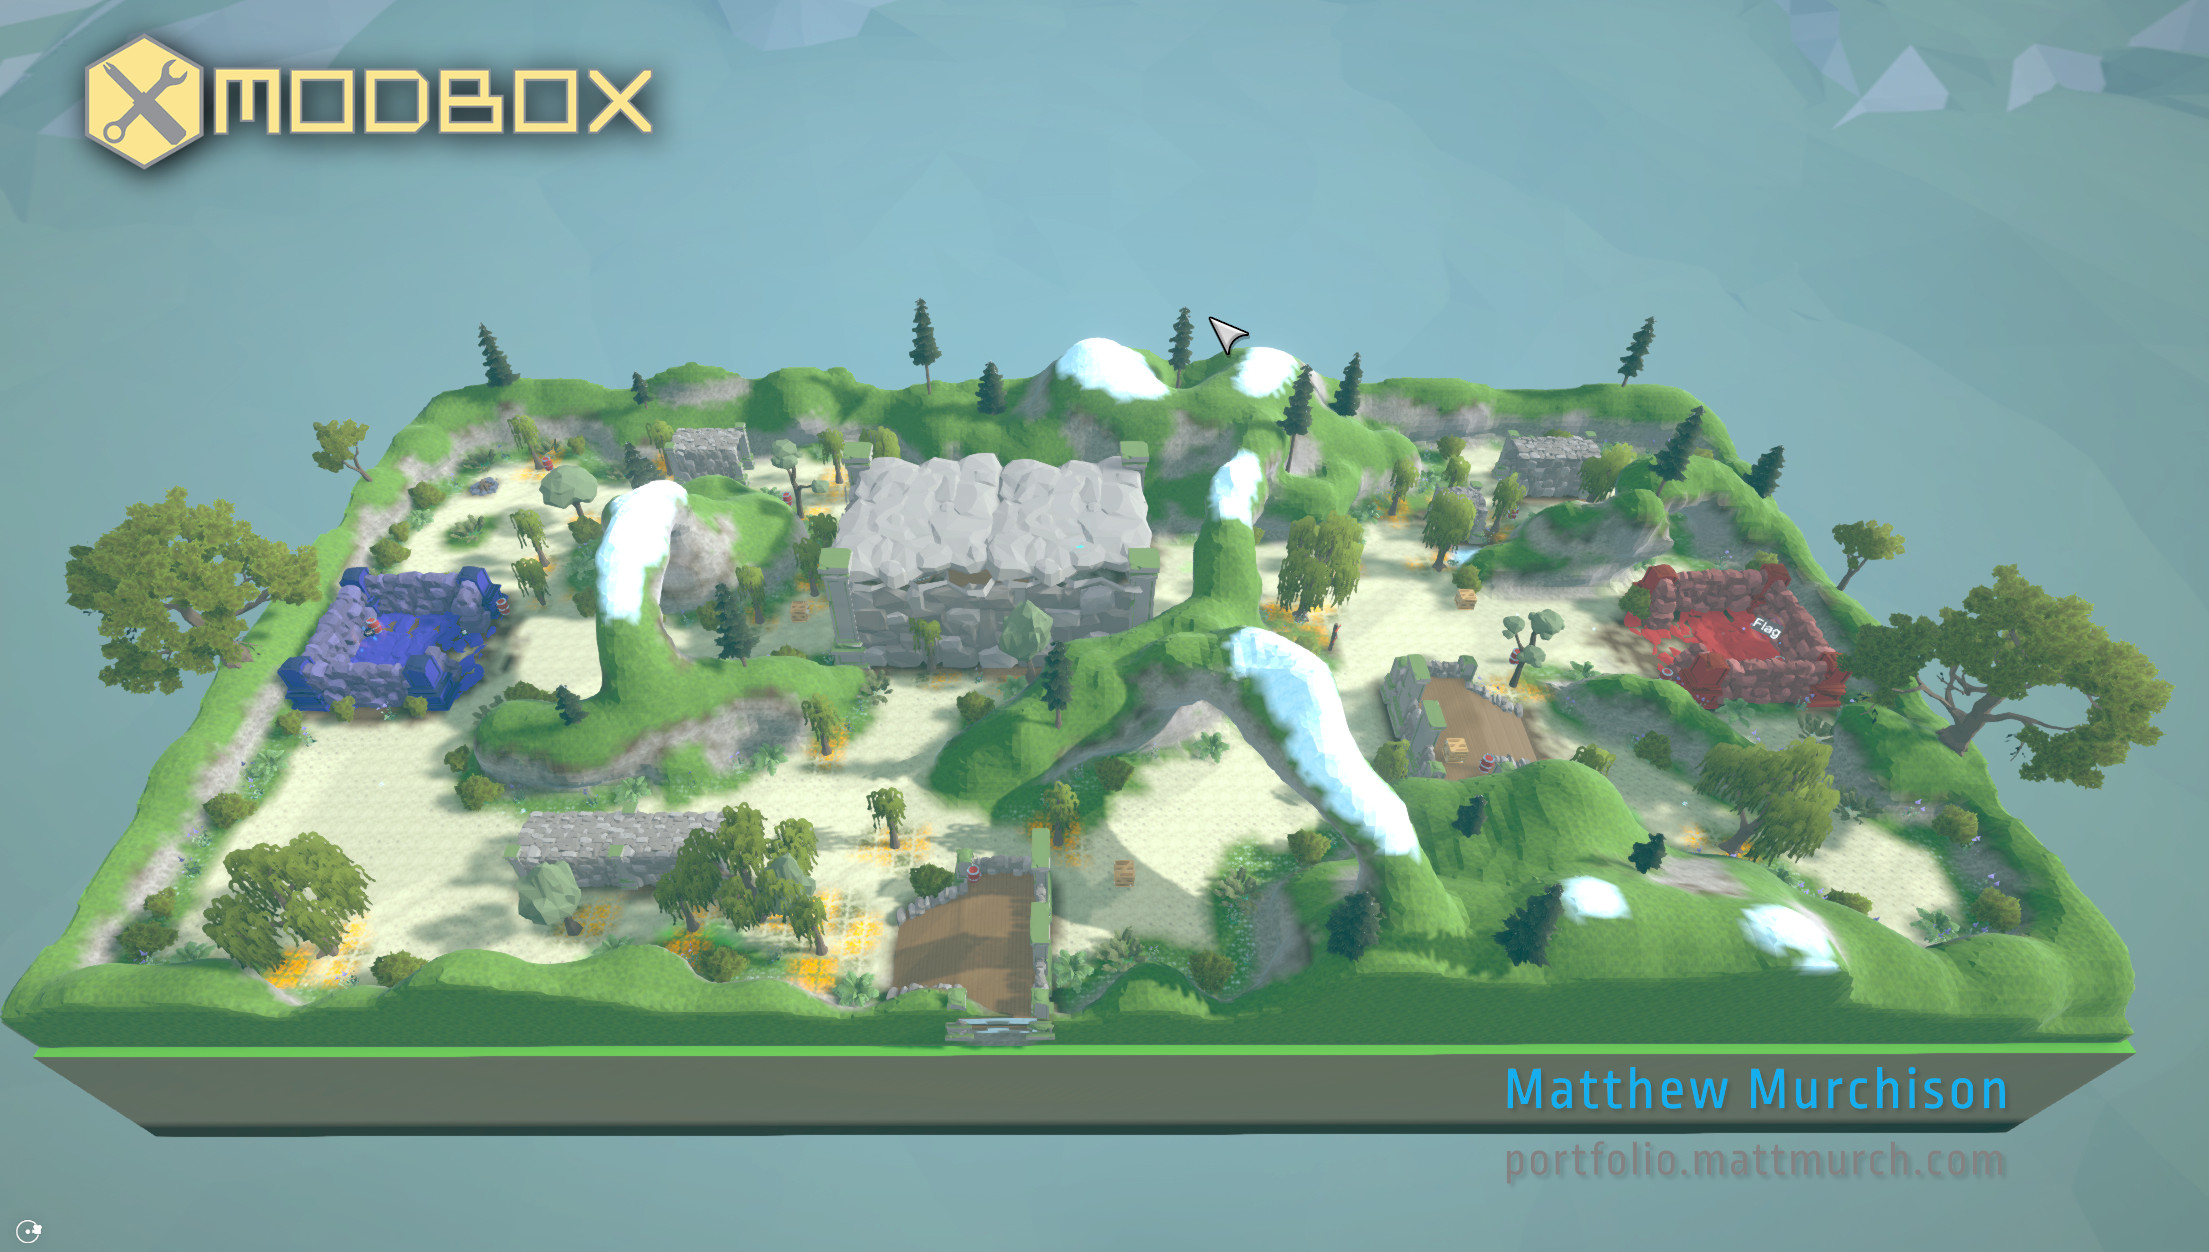 The asymmetrical map uses elevation and path layout to keep gameplay balanced and extremely fun.